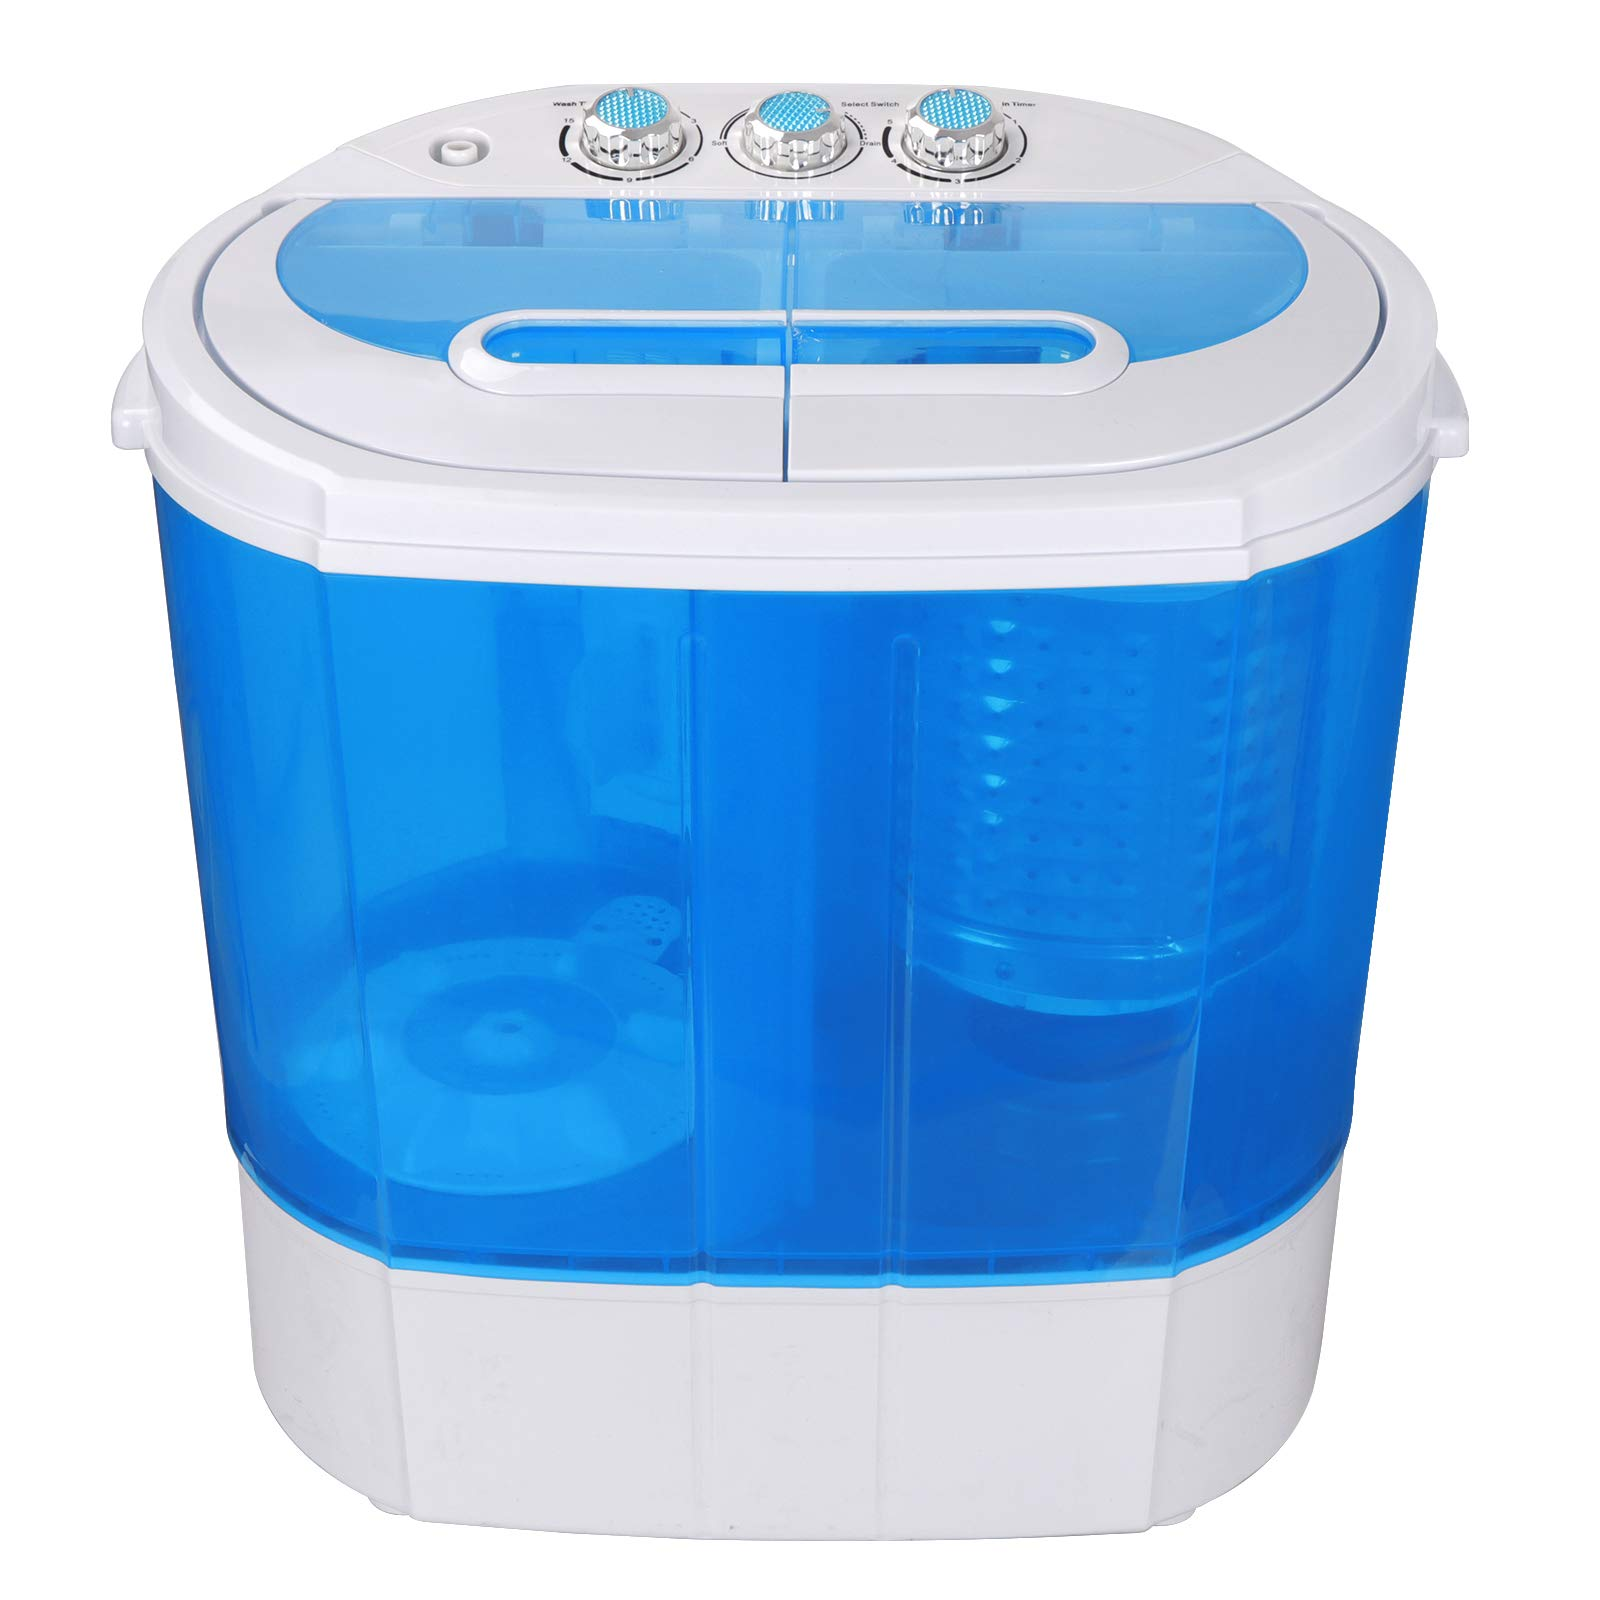 SUPER DEAL Portable Compact Washing Machine, Mini Twin Tub Washing Machine w/Washer&Spinner, Gravity Drain Pump and Drain Hose by SUPER DEAL